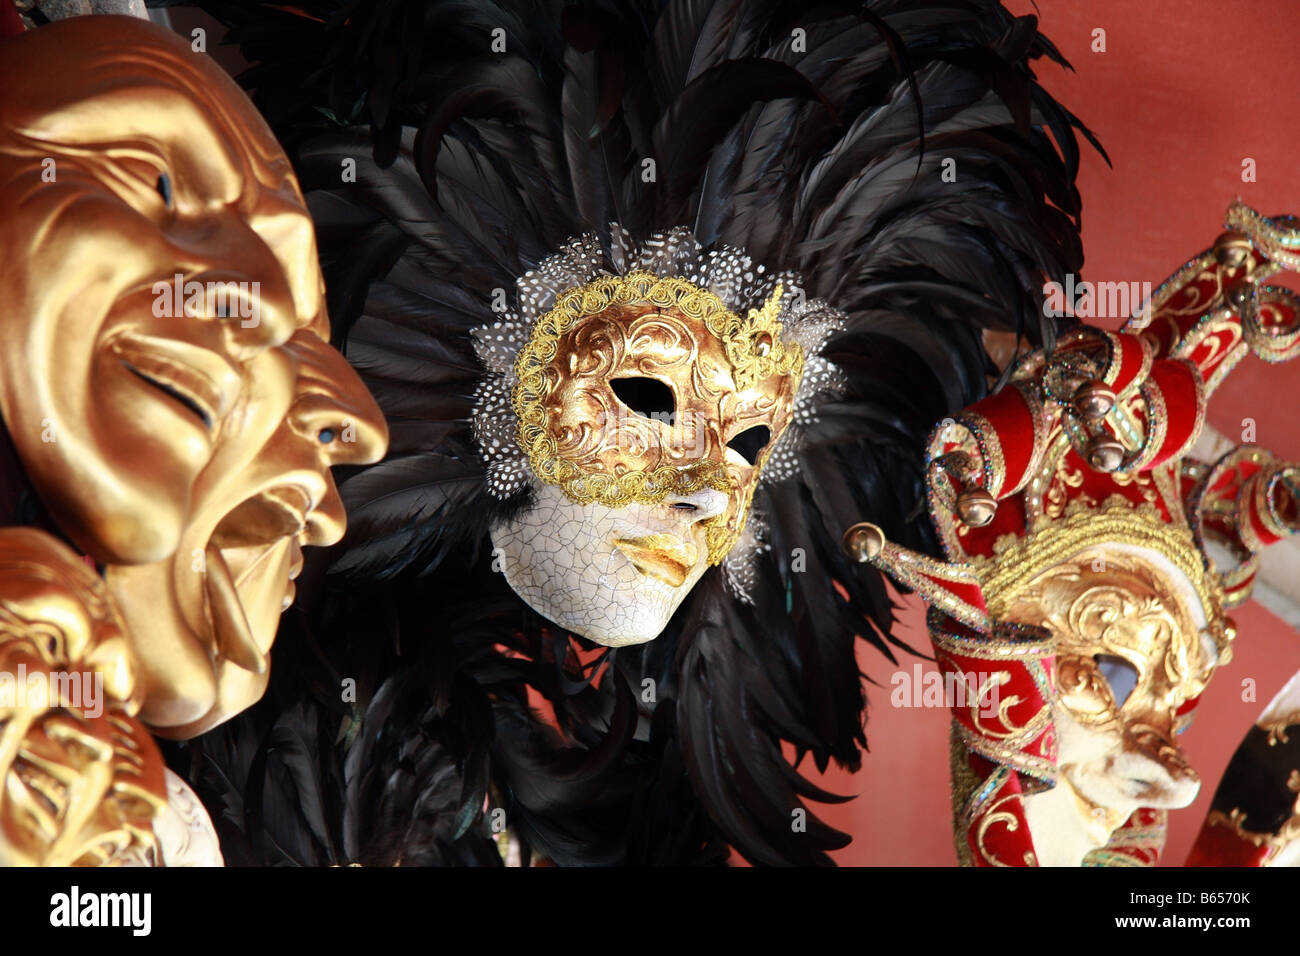 Venetian masks with black feathers on a red background - Stock Image